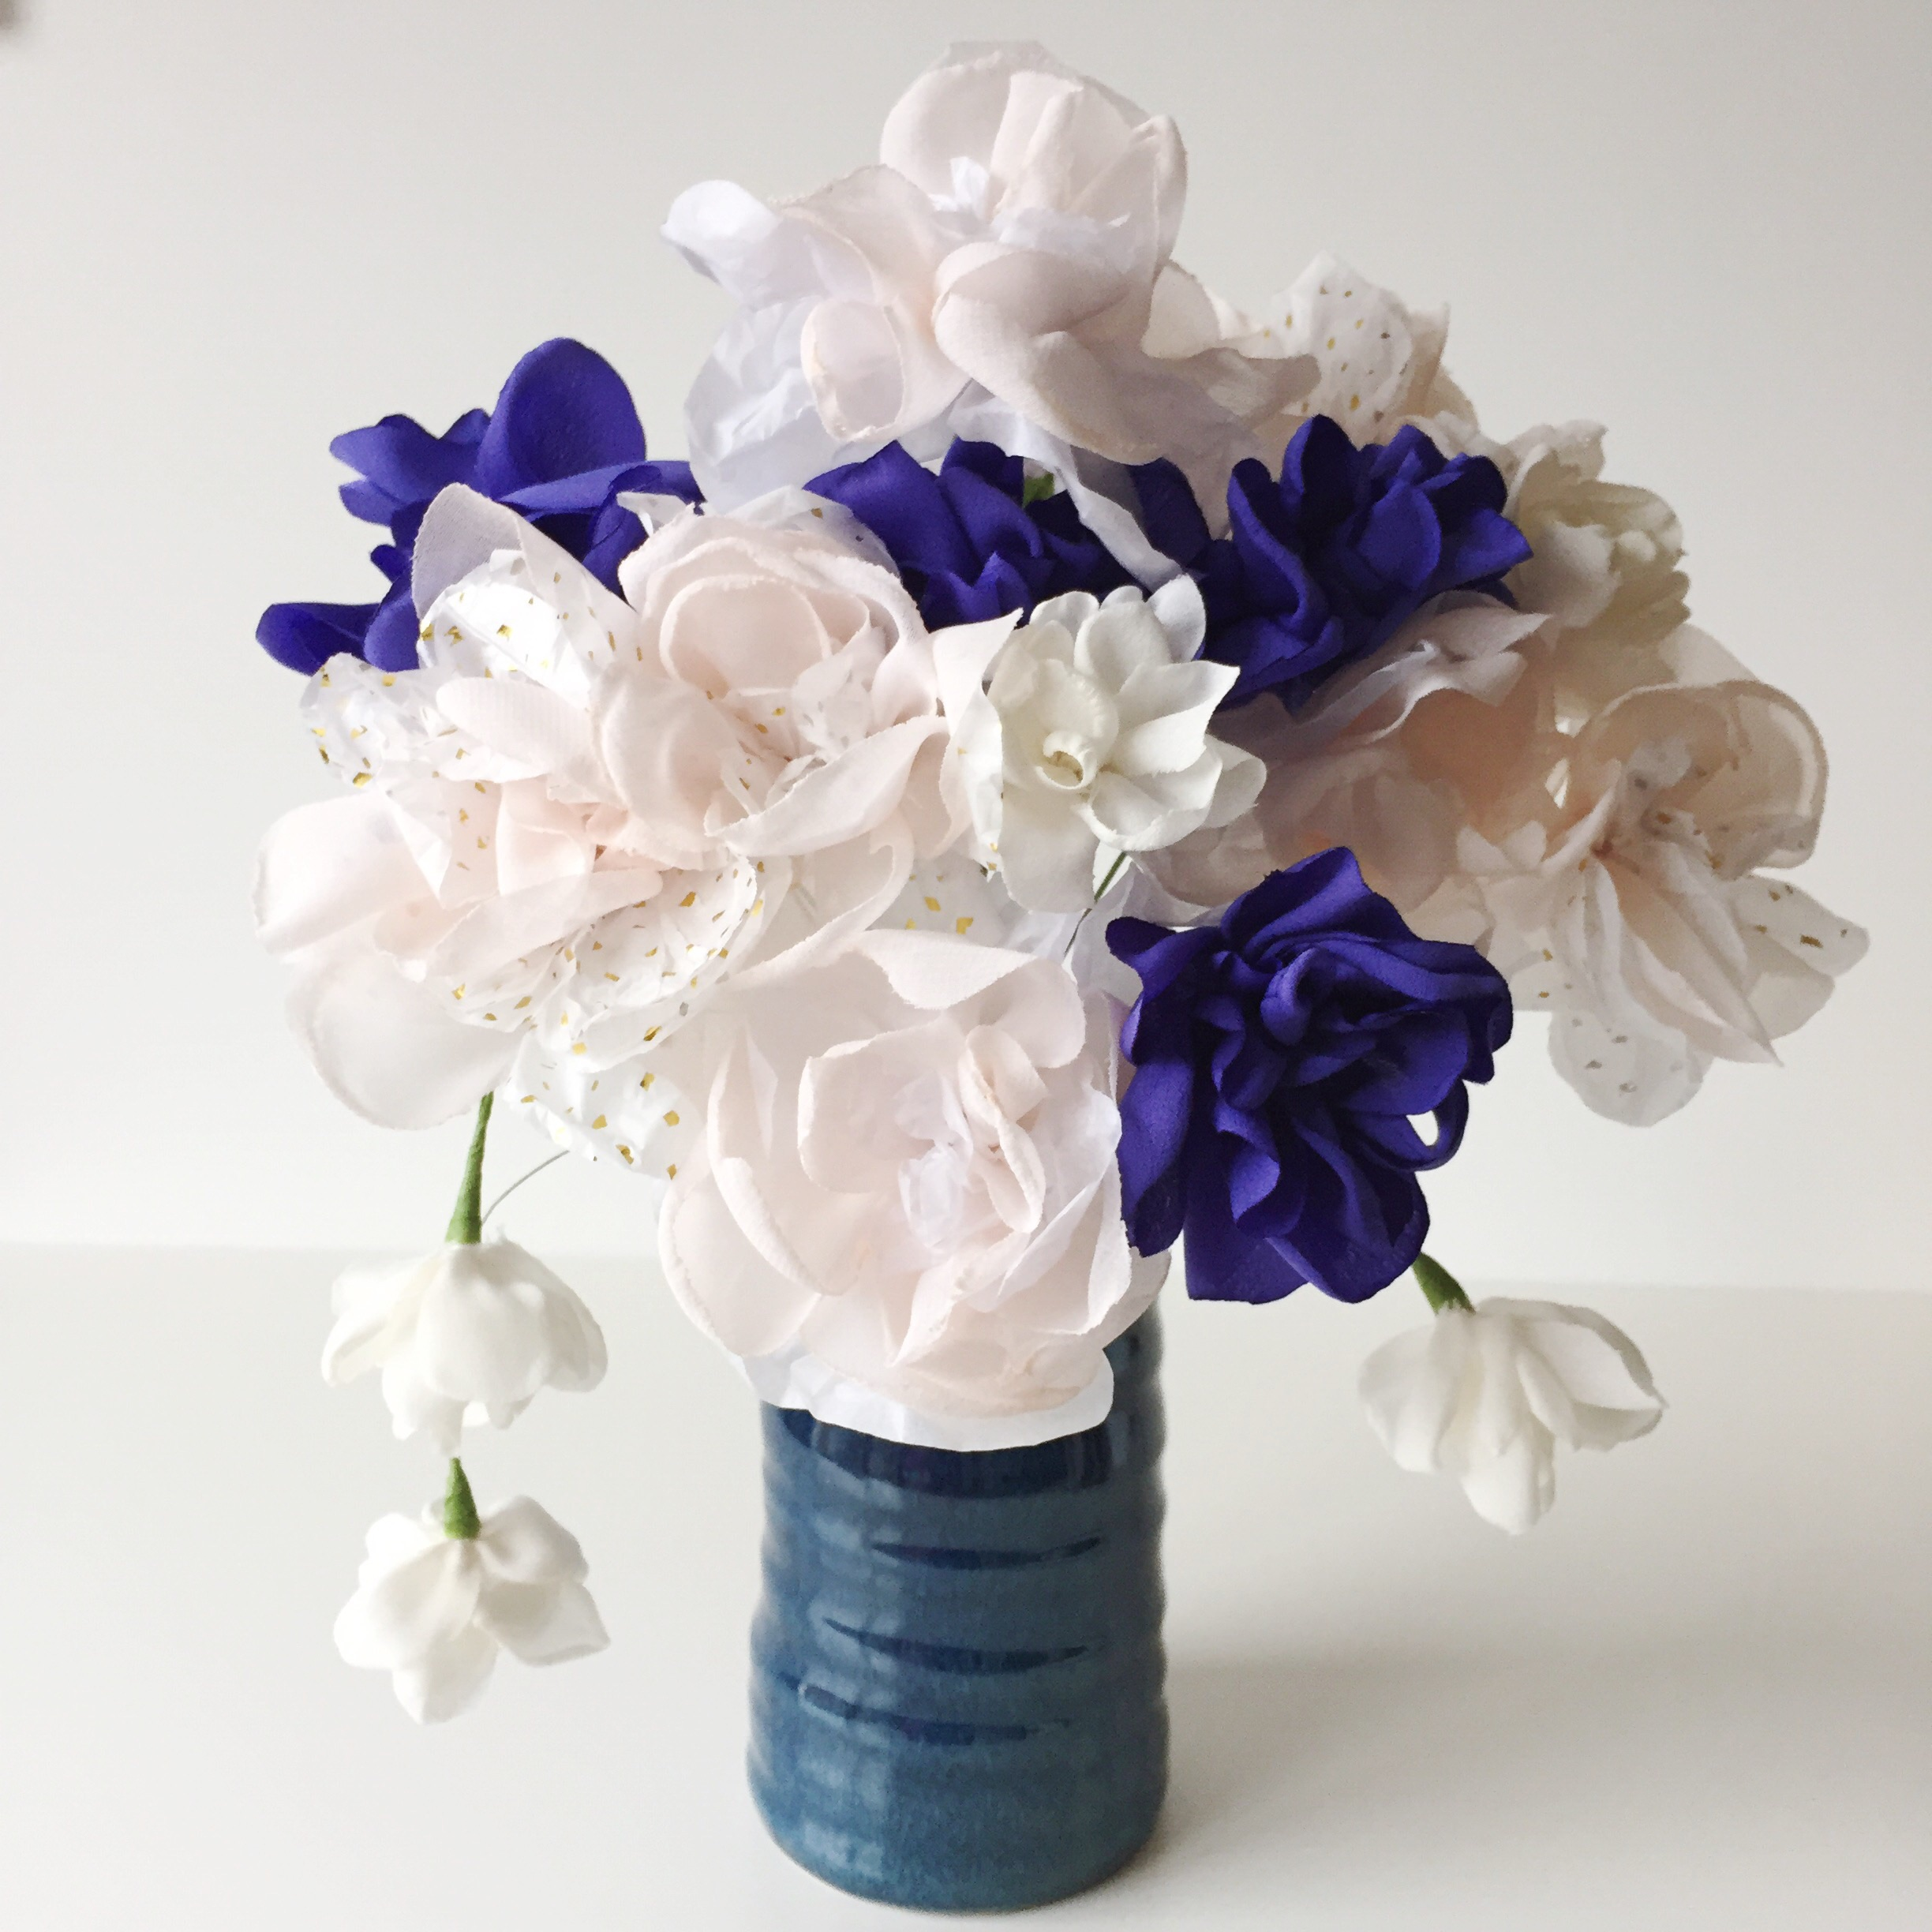 Bunch of hand made fabric and paper azaleas in white and purple displayed in blue vase